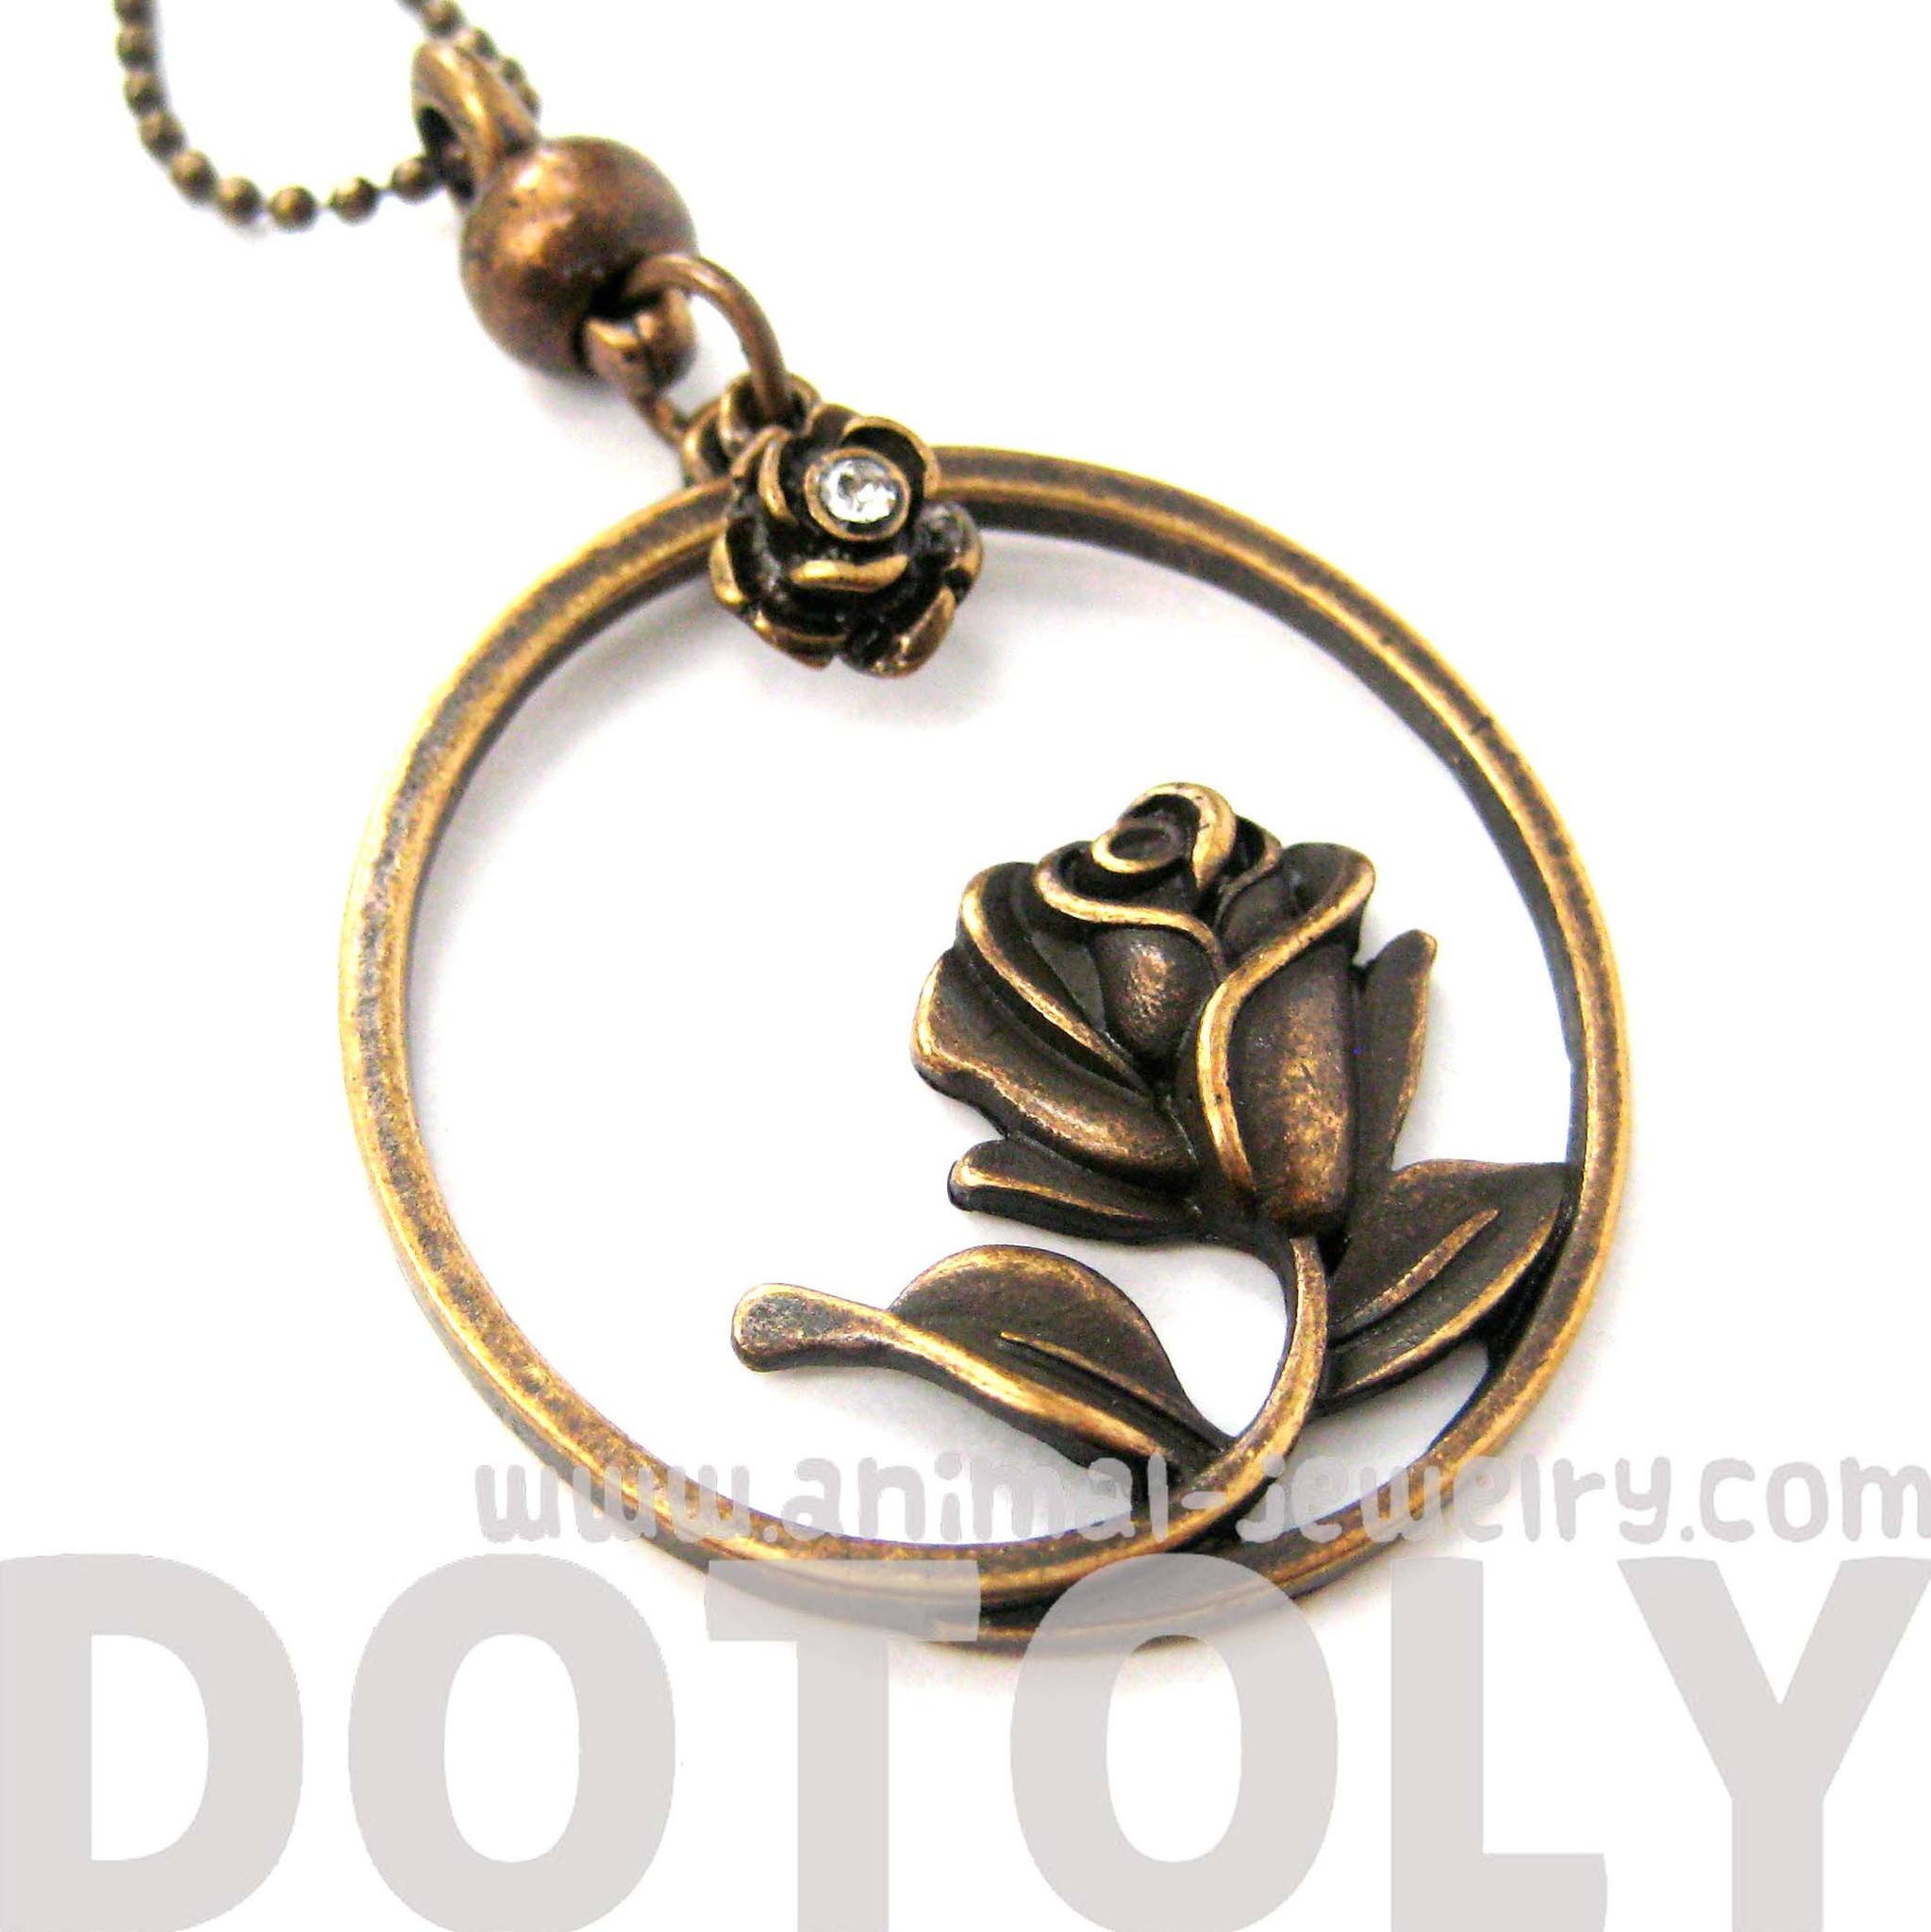 beauty-and-the-beast-inspired-rose-shaped-pendant-necklace-in-bronze